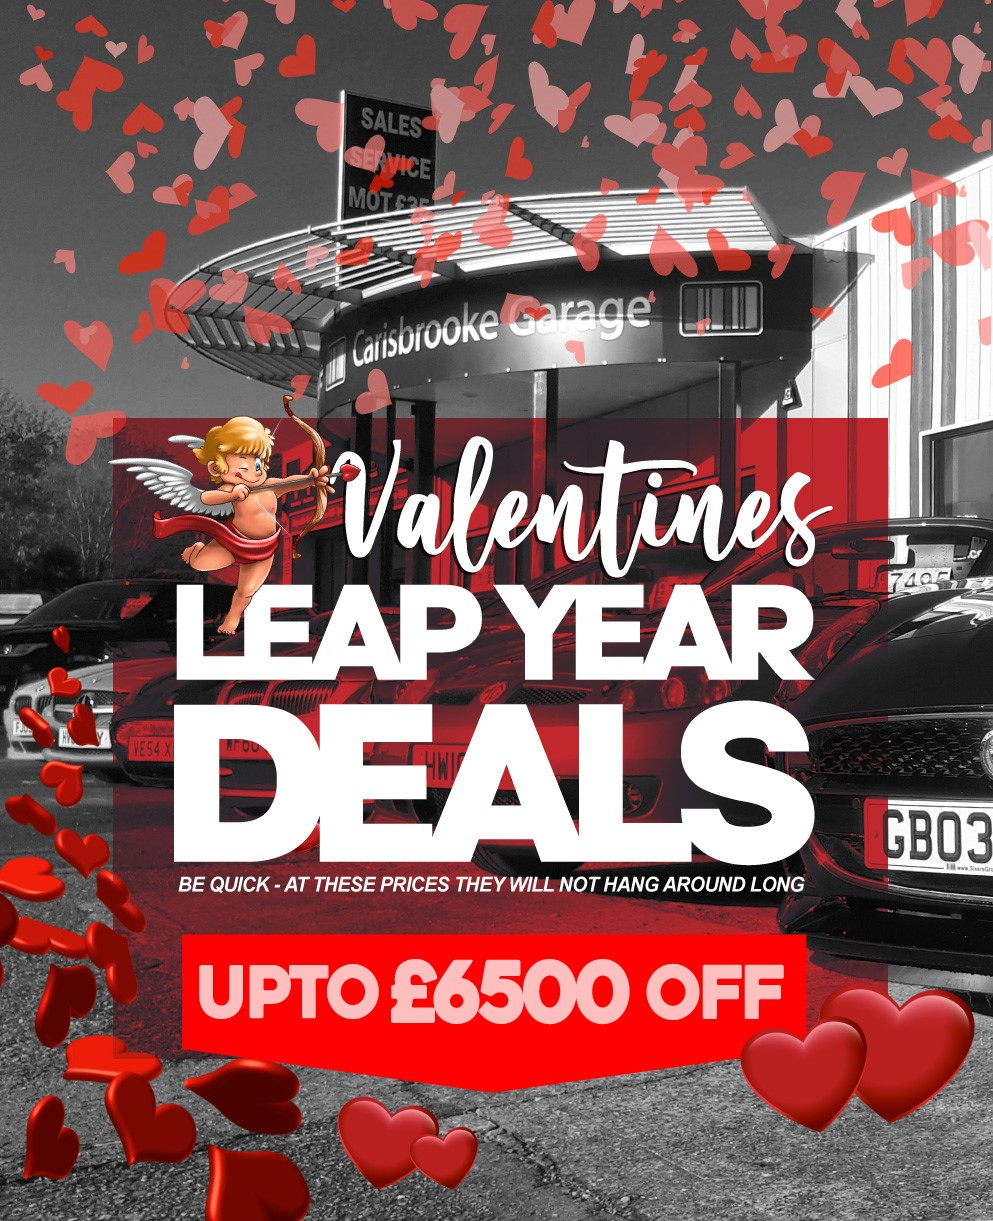 Used Cars for Sale Isle of Wight Valentine Leap Year Deals - Sixers Group Tablet